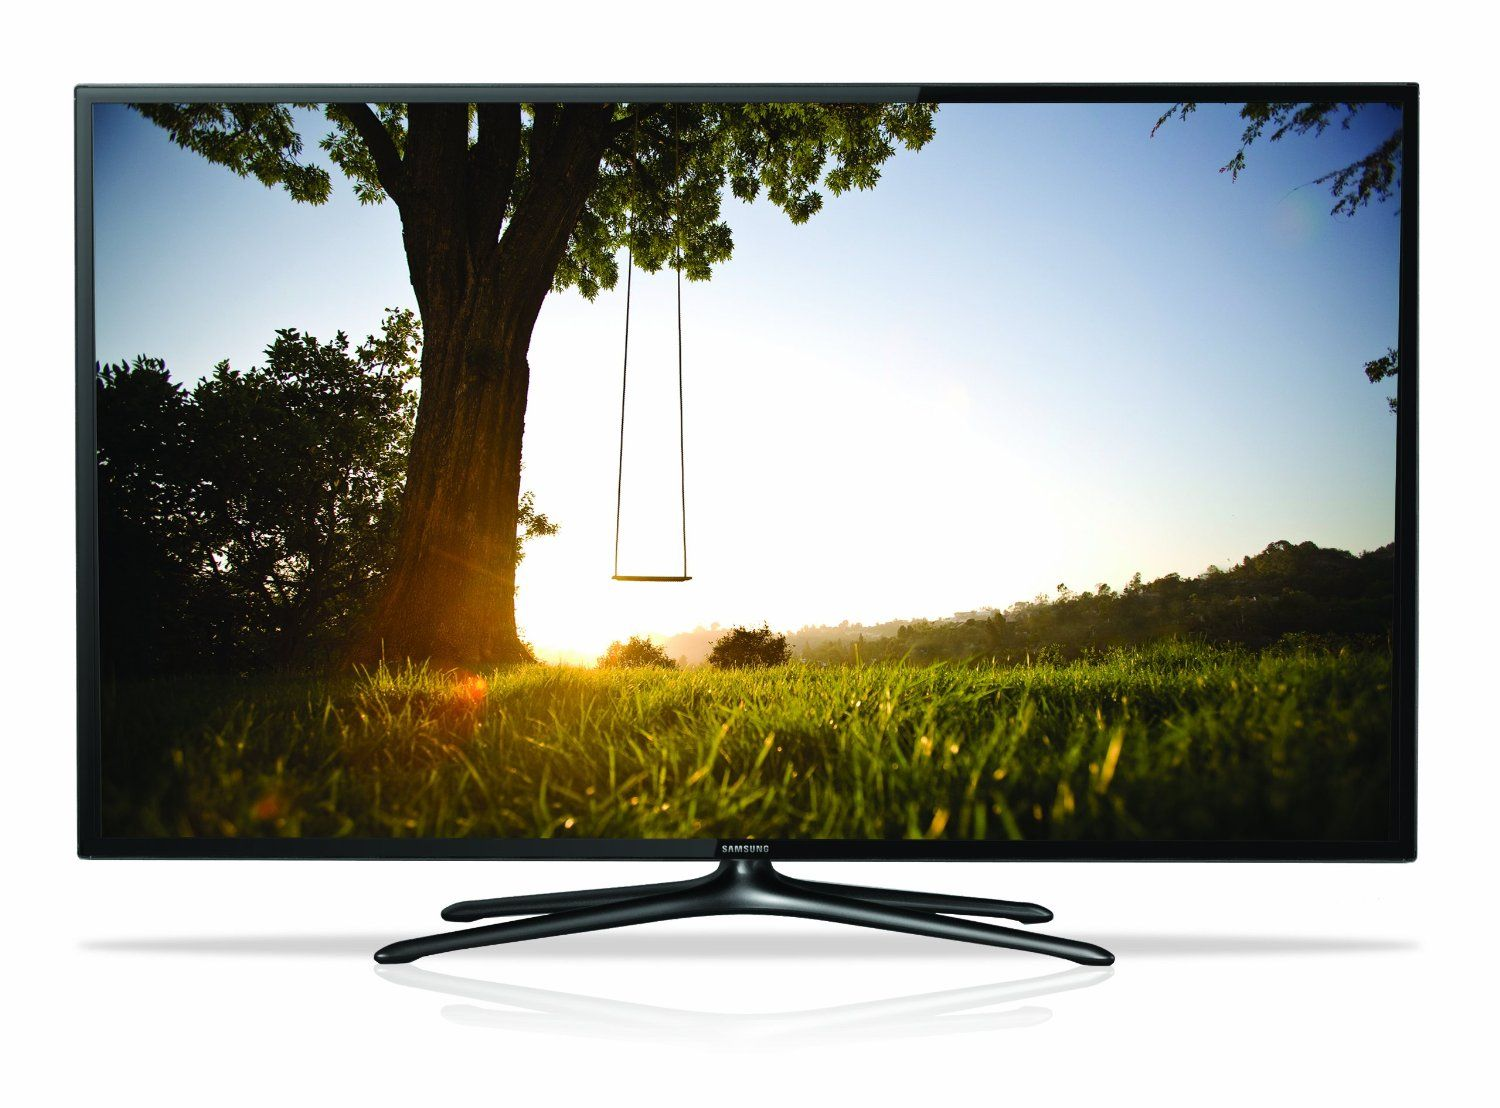 Amazon Com Samsung Un50f6400 50 Inch 1080p 120hz 3d Slim Smart Led Hdtv Electronics Price 1 097 99 This Item Qualifies For 2 Smart Tv Samsung Led Tv